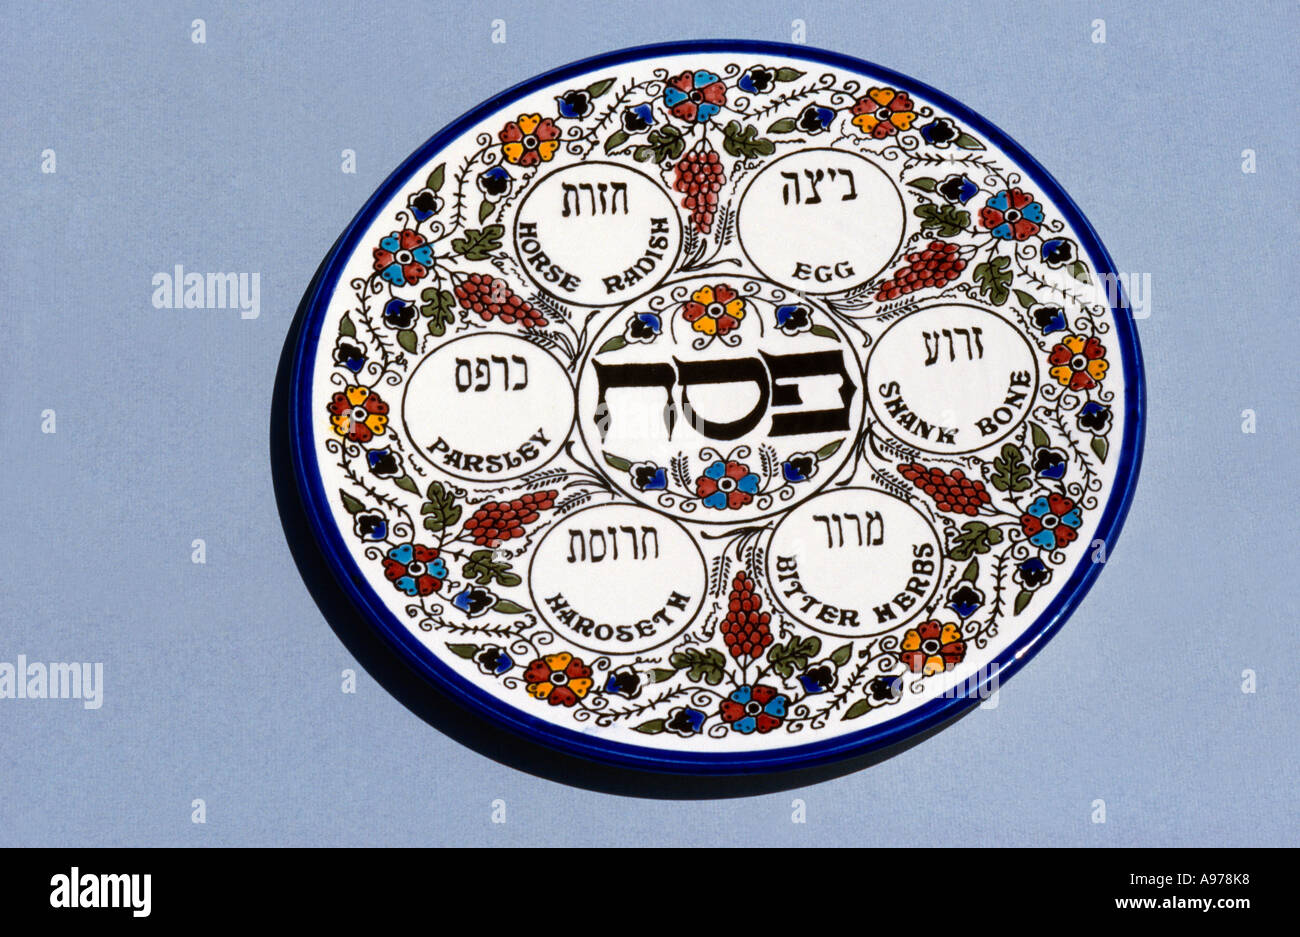 Seder Plate For Passover - Stock Image